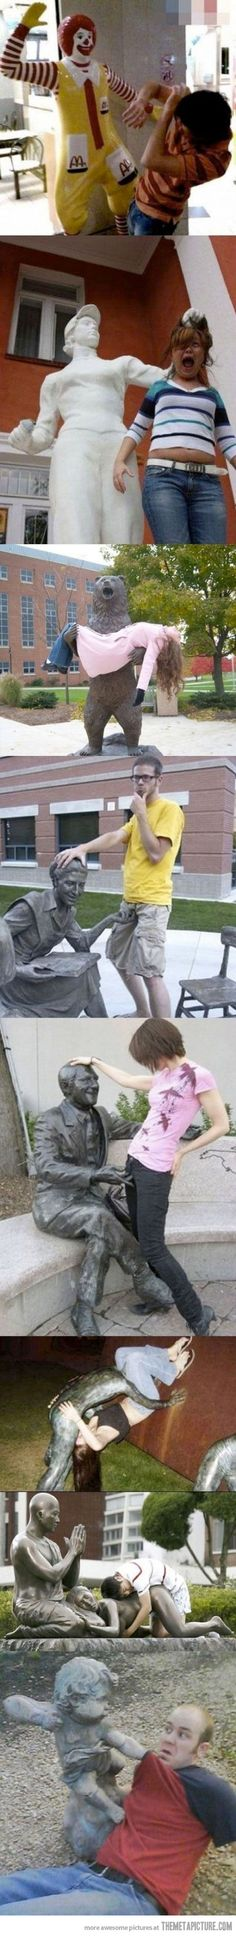 More Fun with Statues! Lol! tjn